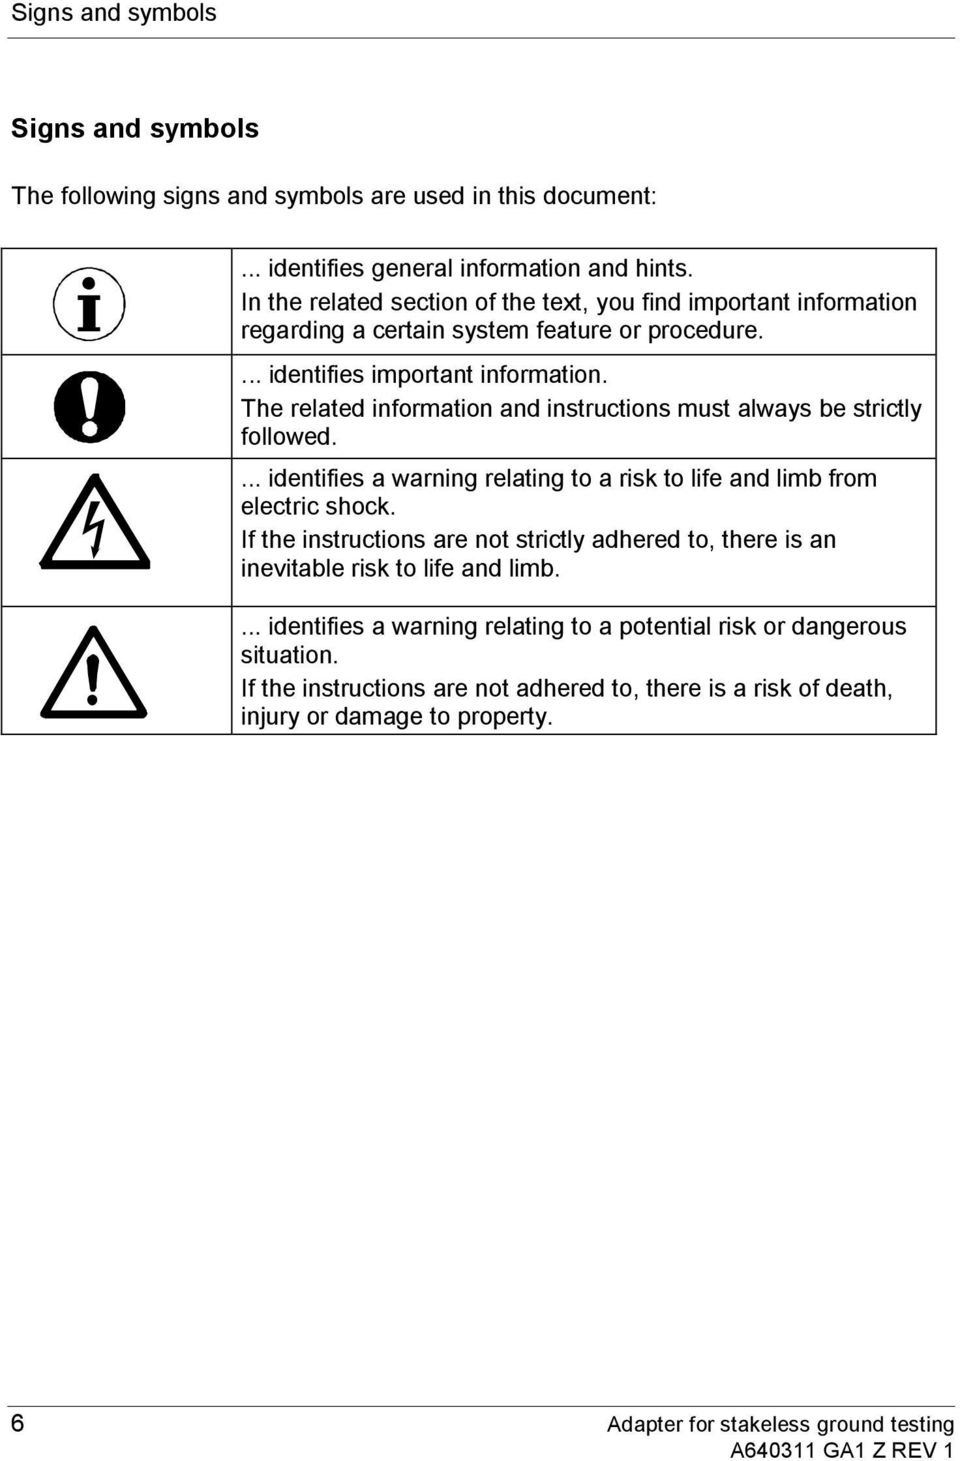 The related information and instructions must always be strictly followed.... identifies a warning relating to a risk to life and limb from electric shock.